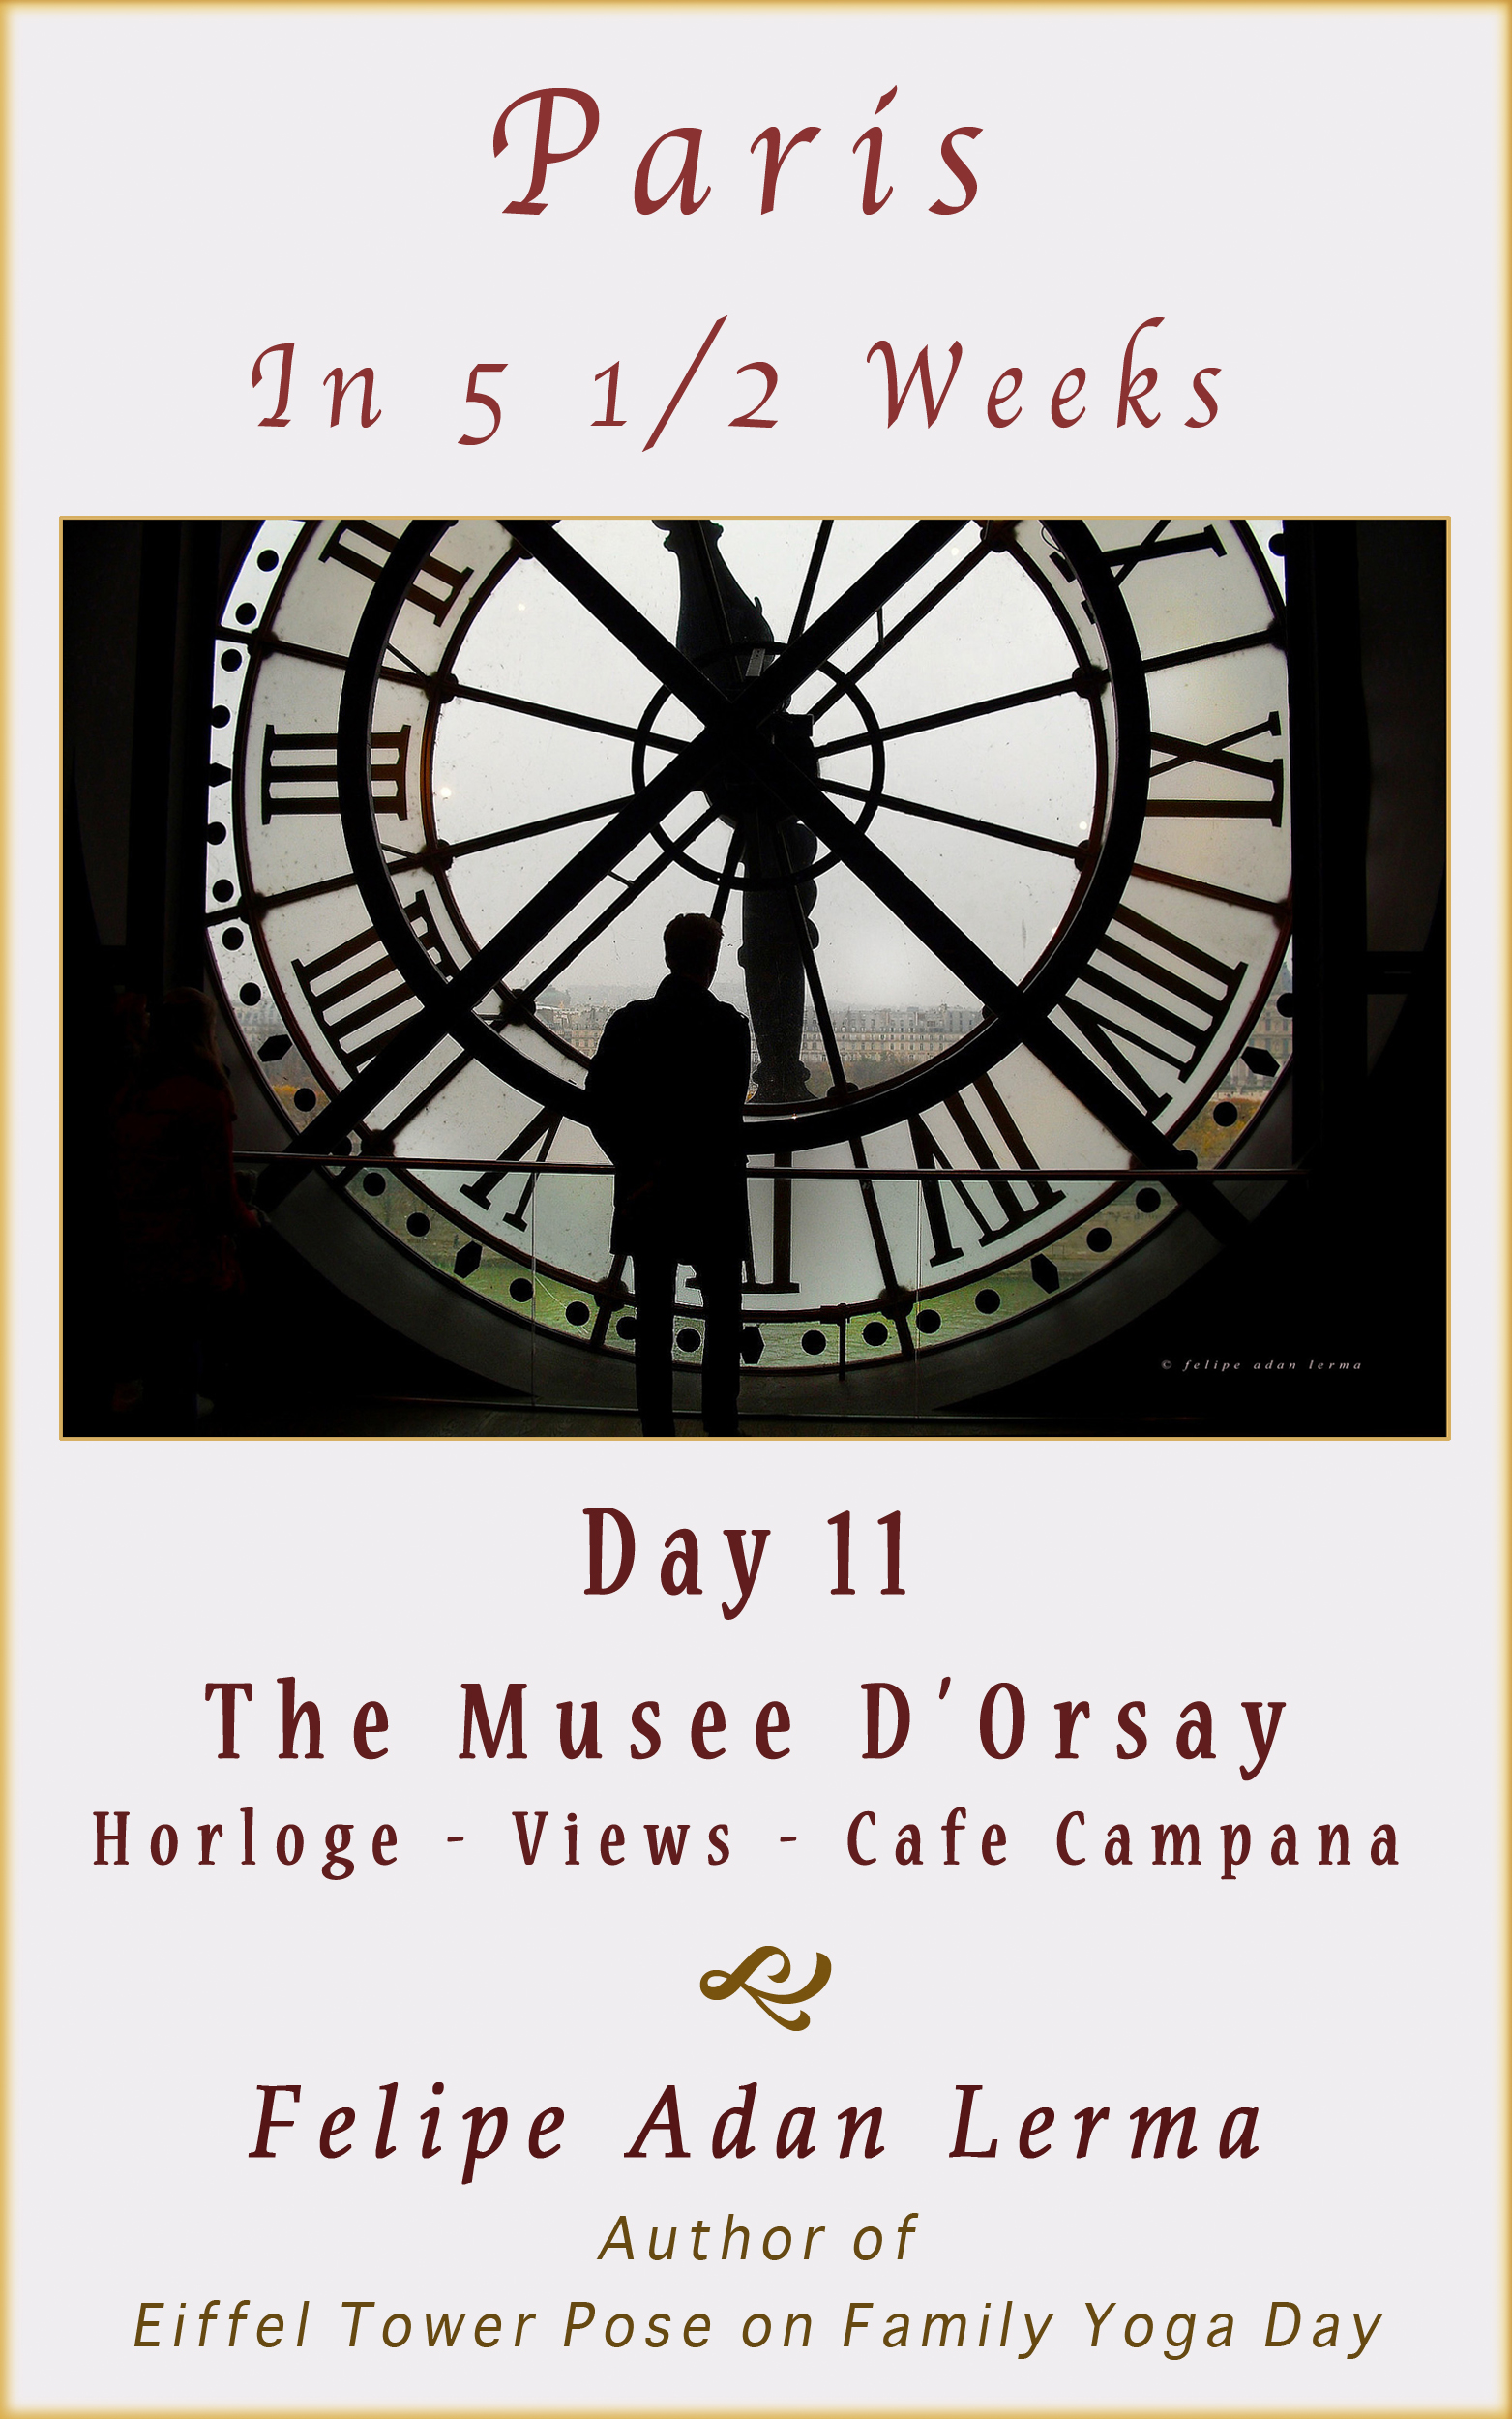 Paris in 5 1/2 Weeks, Day 11 The Musee d'Orsay © Felipe Adan Lerma - On Amazon https://amzn.to/2HhyL0a .